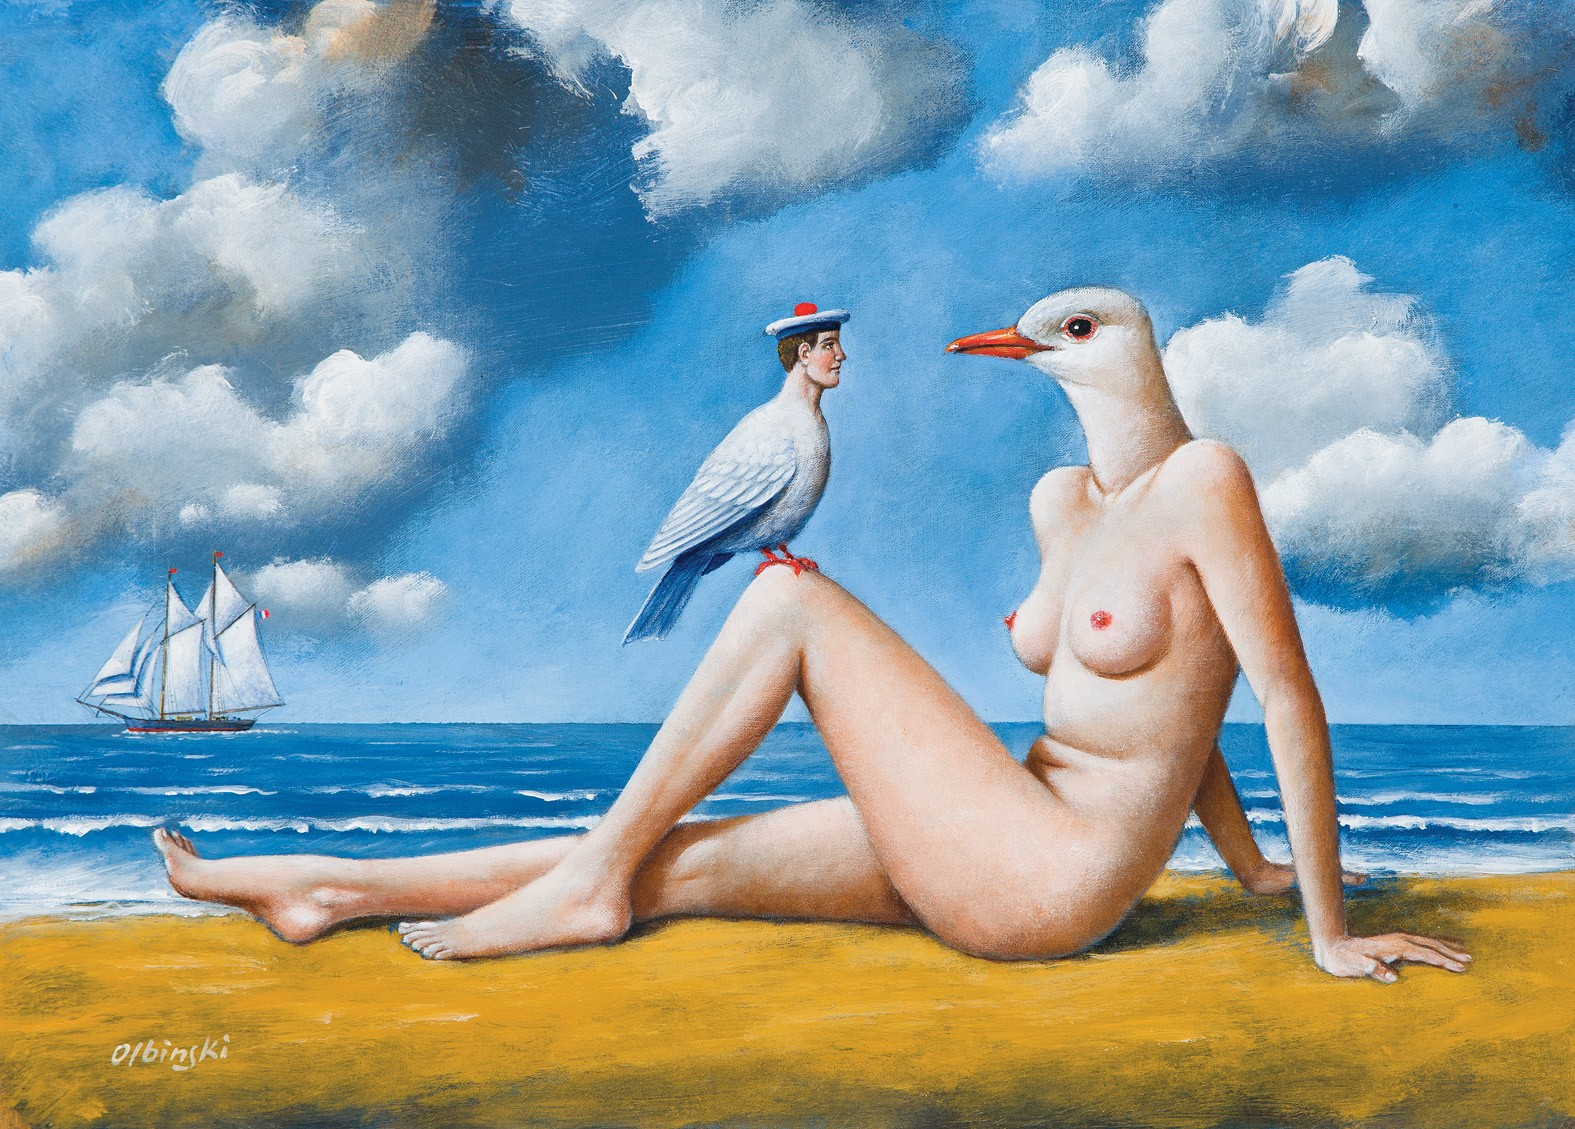 Rafał Olbiński, 7014 - French Sailor Lover - 33x45 cm